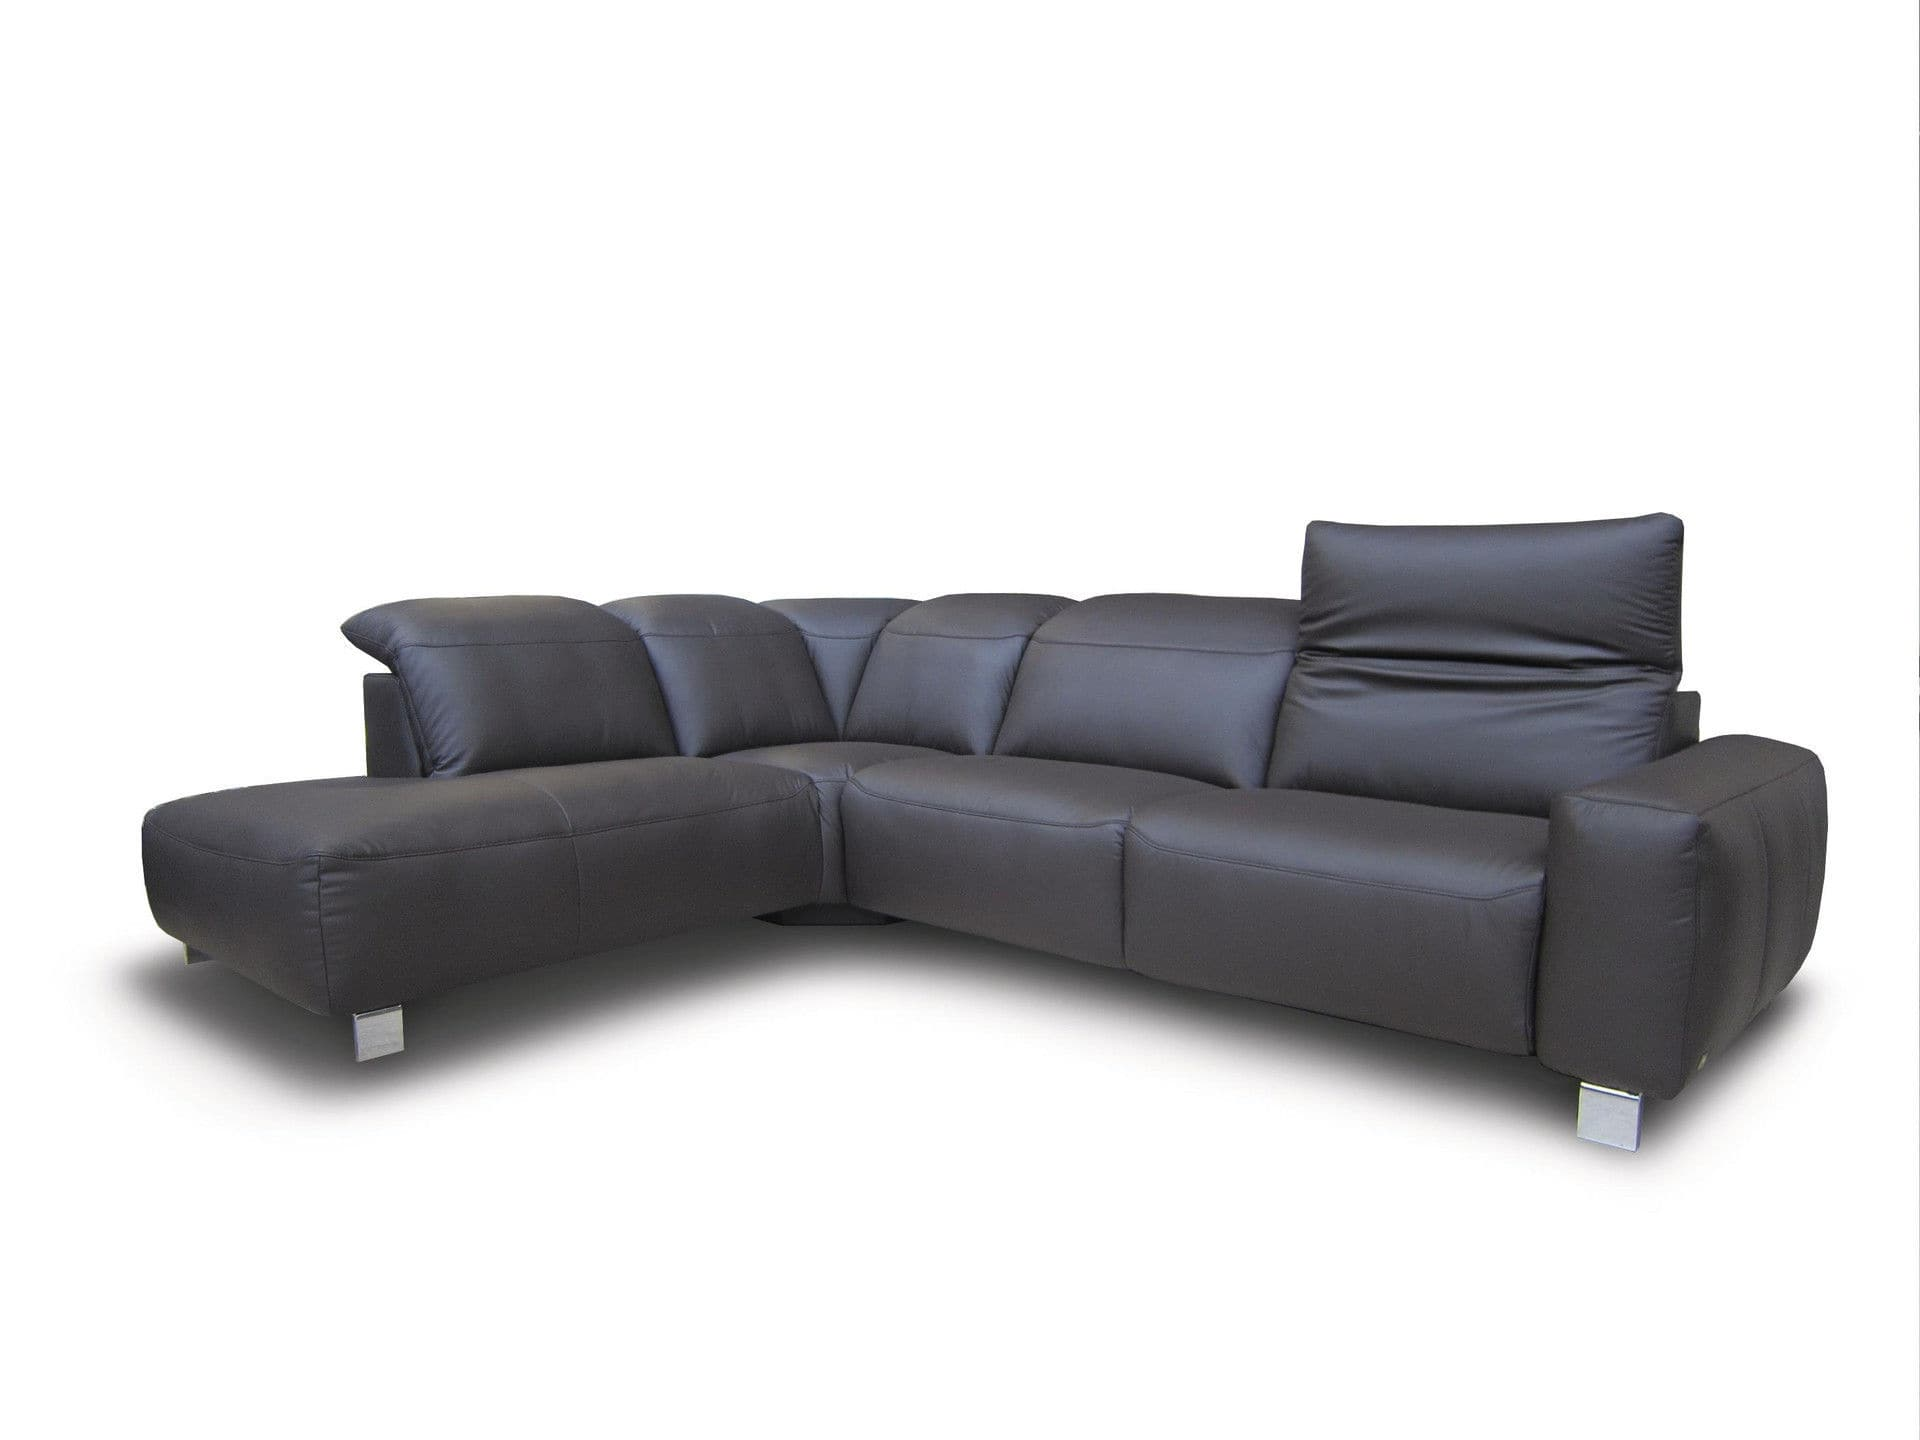 Modular sofa / contemporary / leather - MR 590 - Musterring